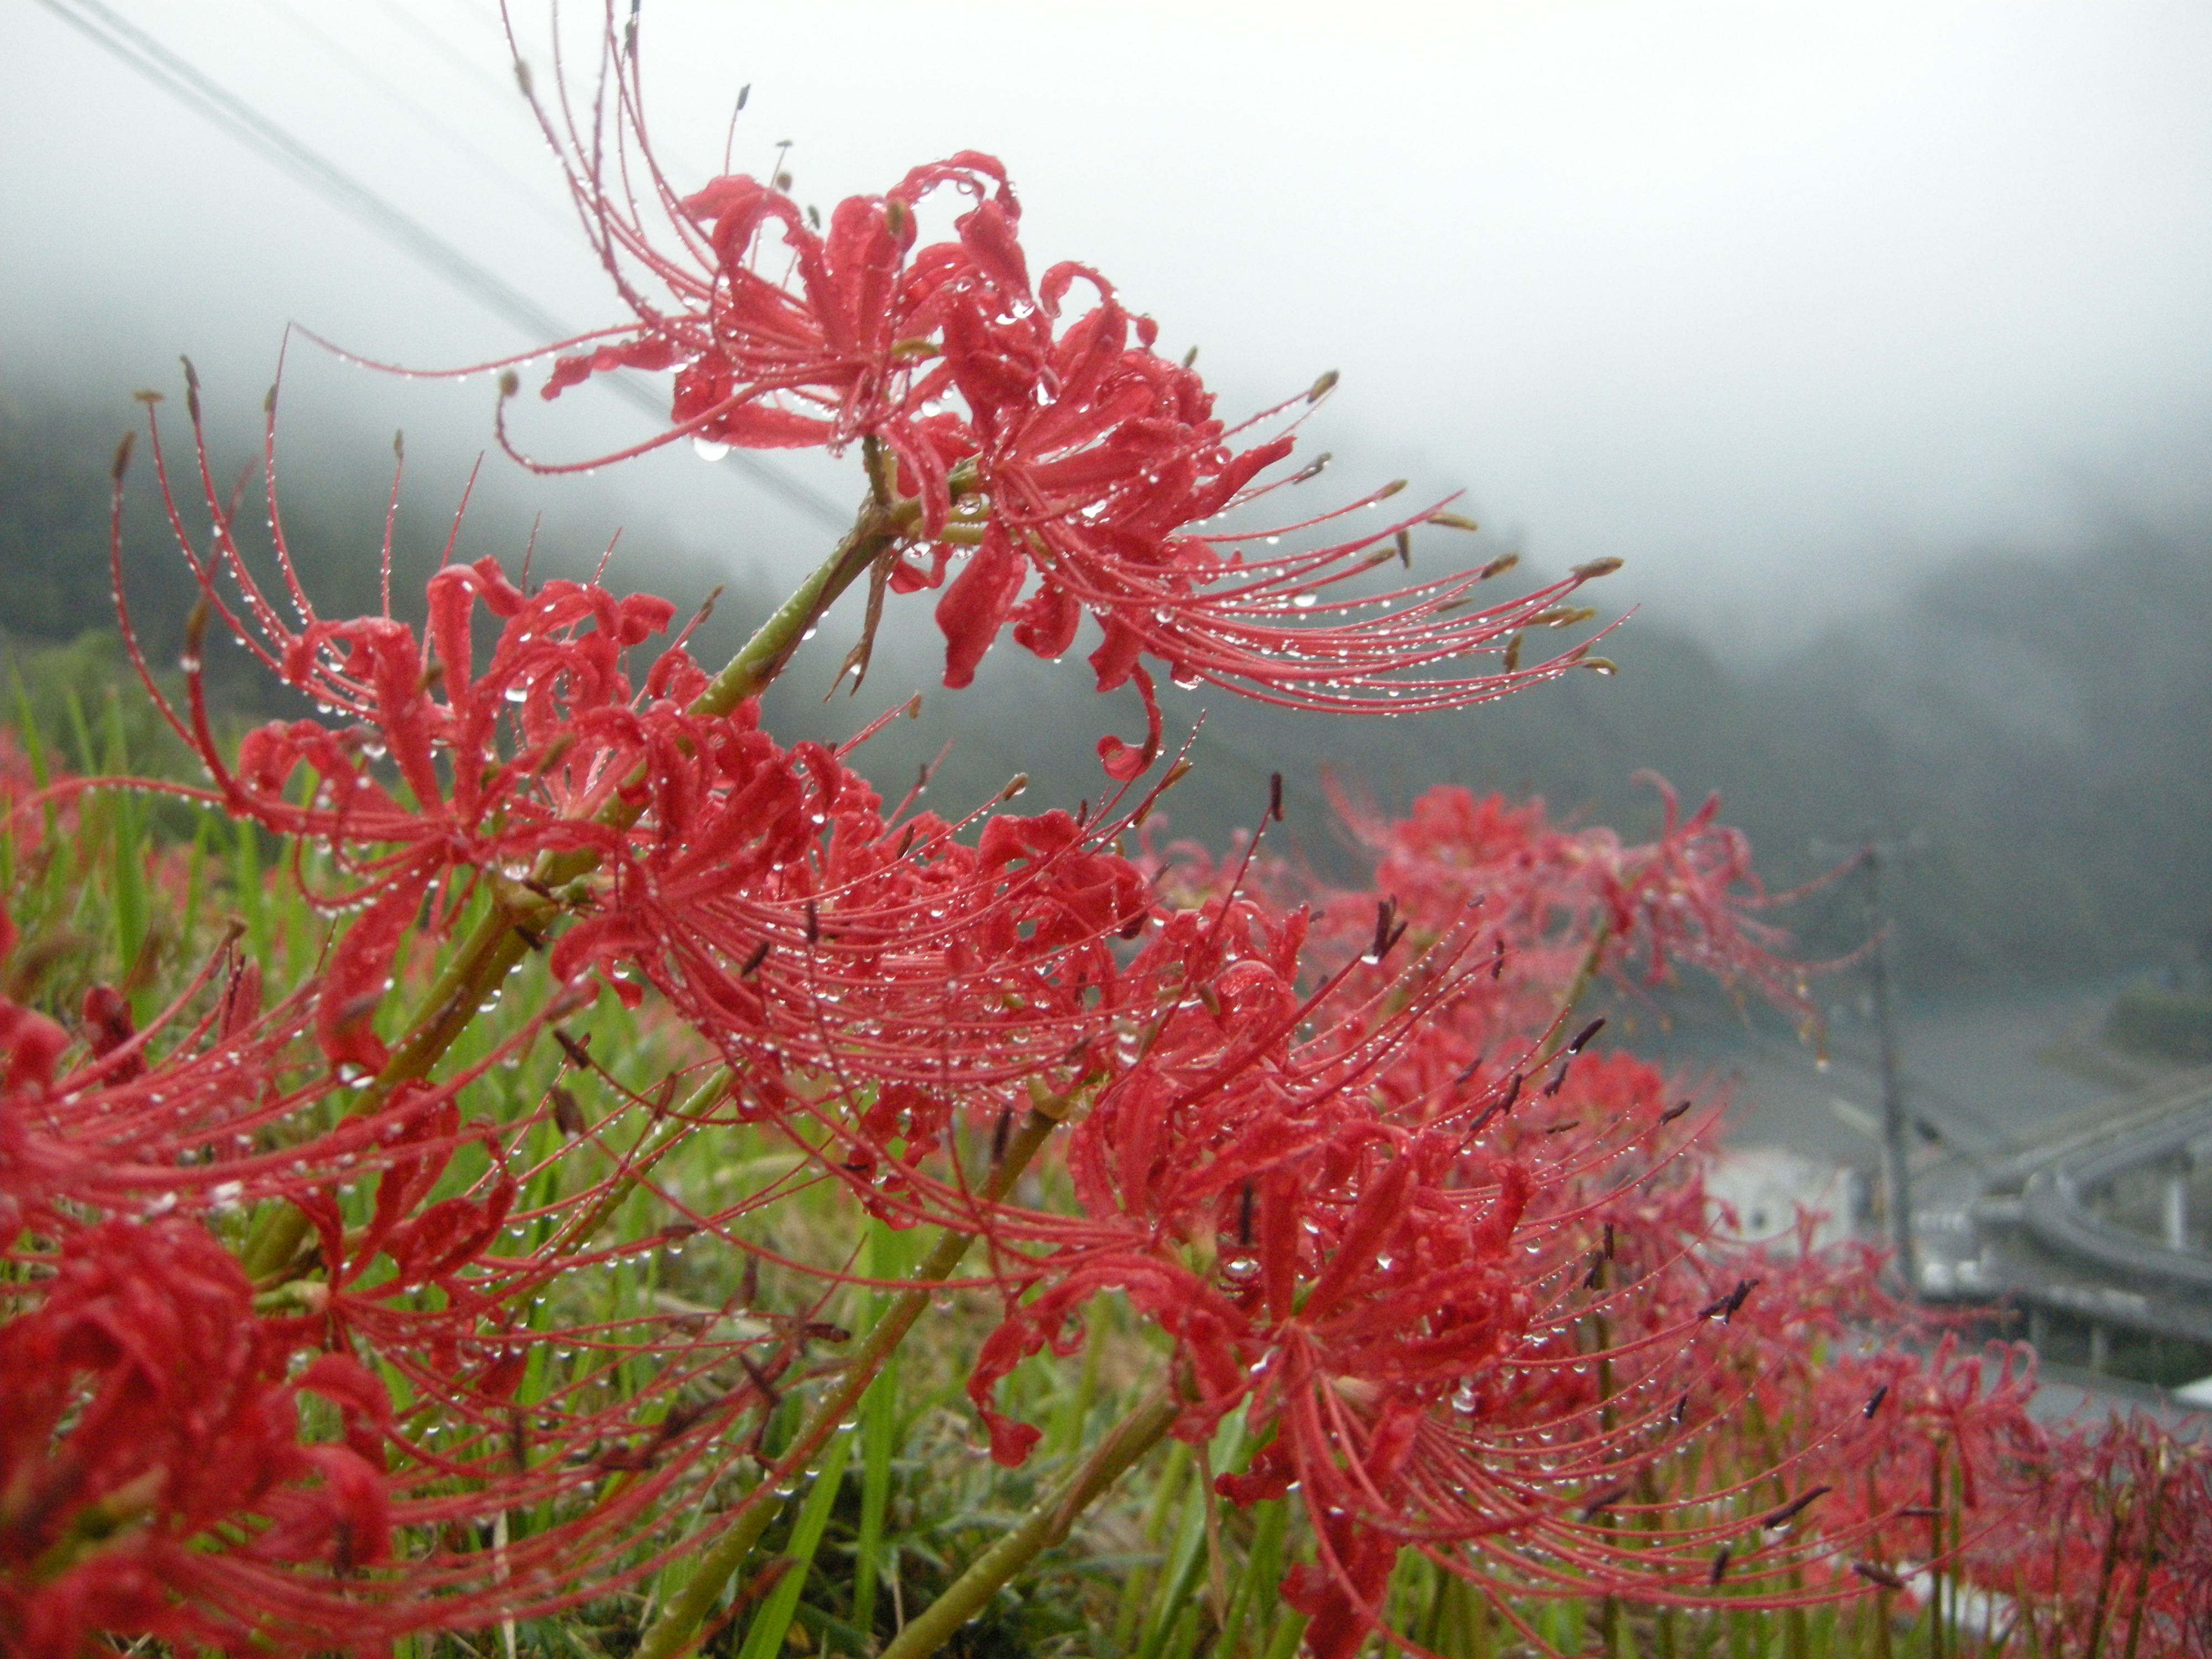 Spider lilies in heaven spider lilies outside the home of the graceless gaijin in totsukawa this past october izmirmasajfo